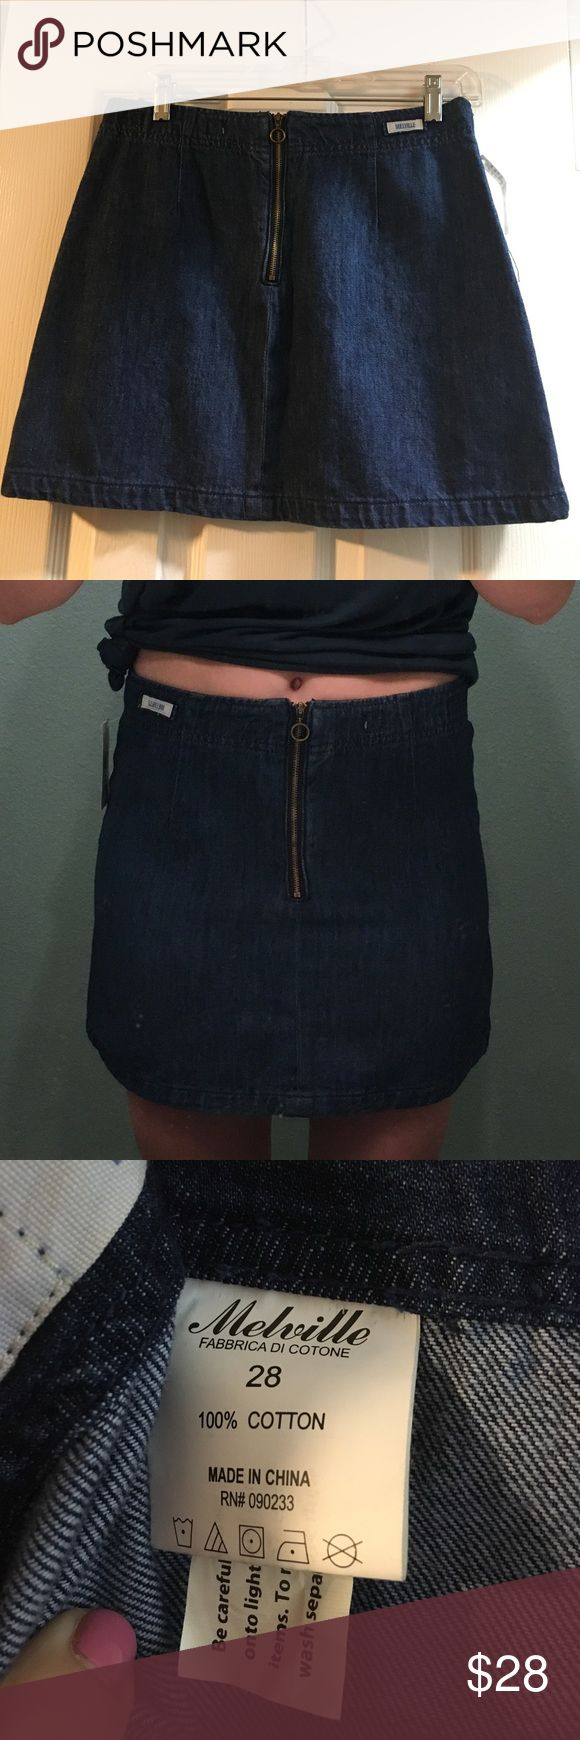 BRANDY MELVILLE DENIM ZIP UP SKIRT Denim zip up Brandy Melville skirt was bough and new worn (so new with tags). Perfect condition. Was bought and never worn and recently found out that it was too small. Price is negotiable!!! Comment below for more details! Brandy Melville Skirts Mini